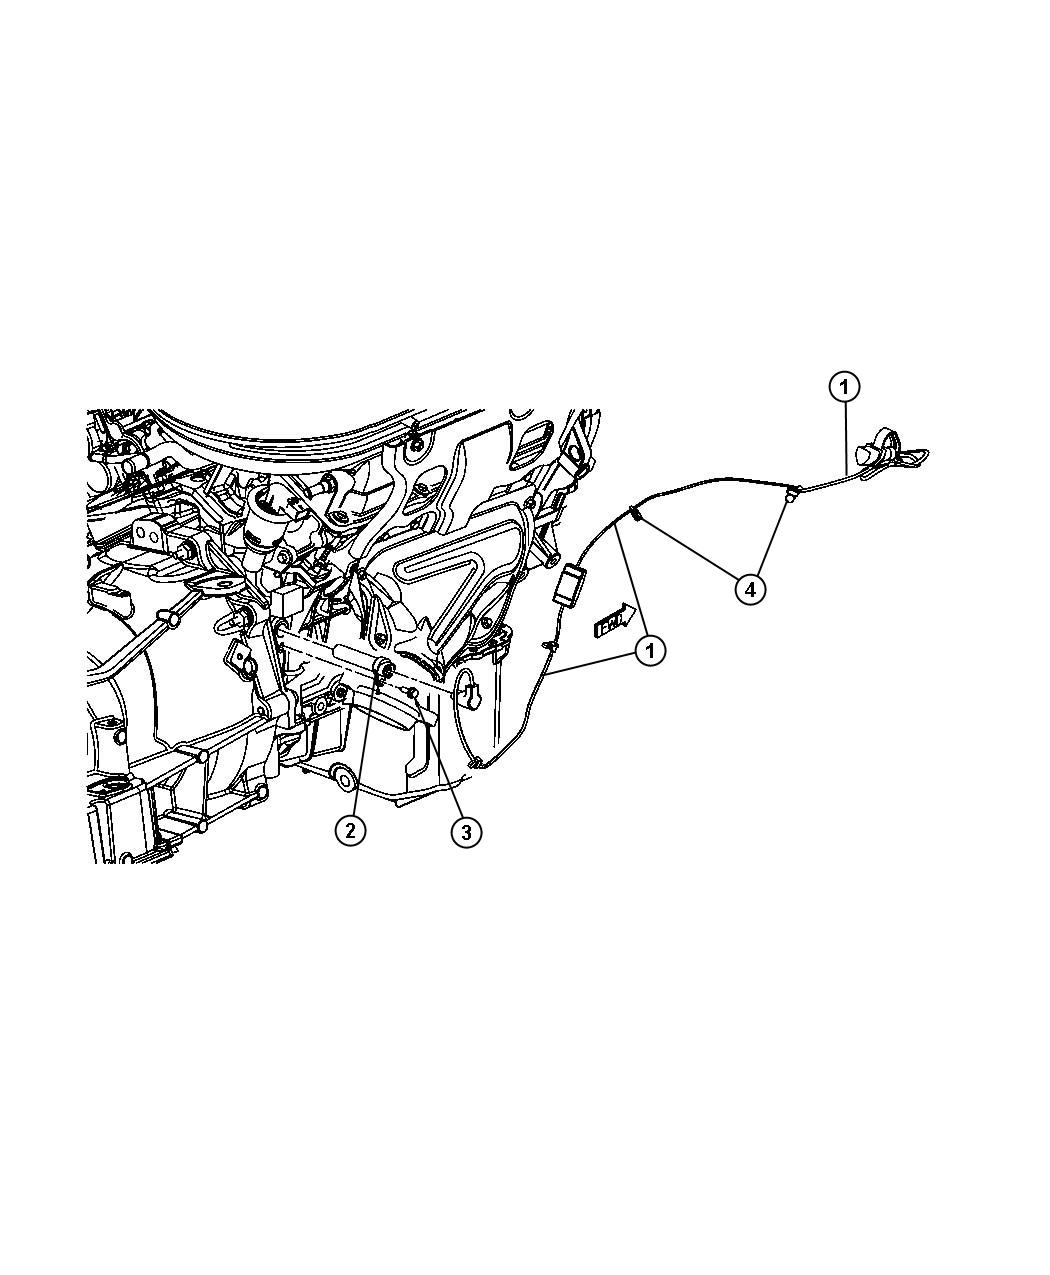 2012 Jku 36 Block Heater Question Jeep Wrangler Forum 2000 Wiring Diagram